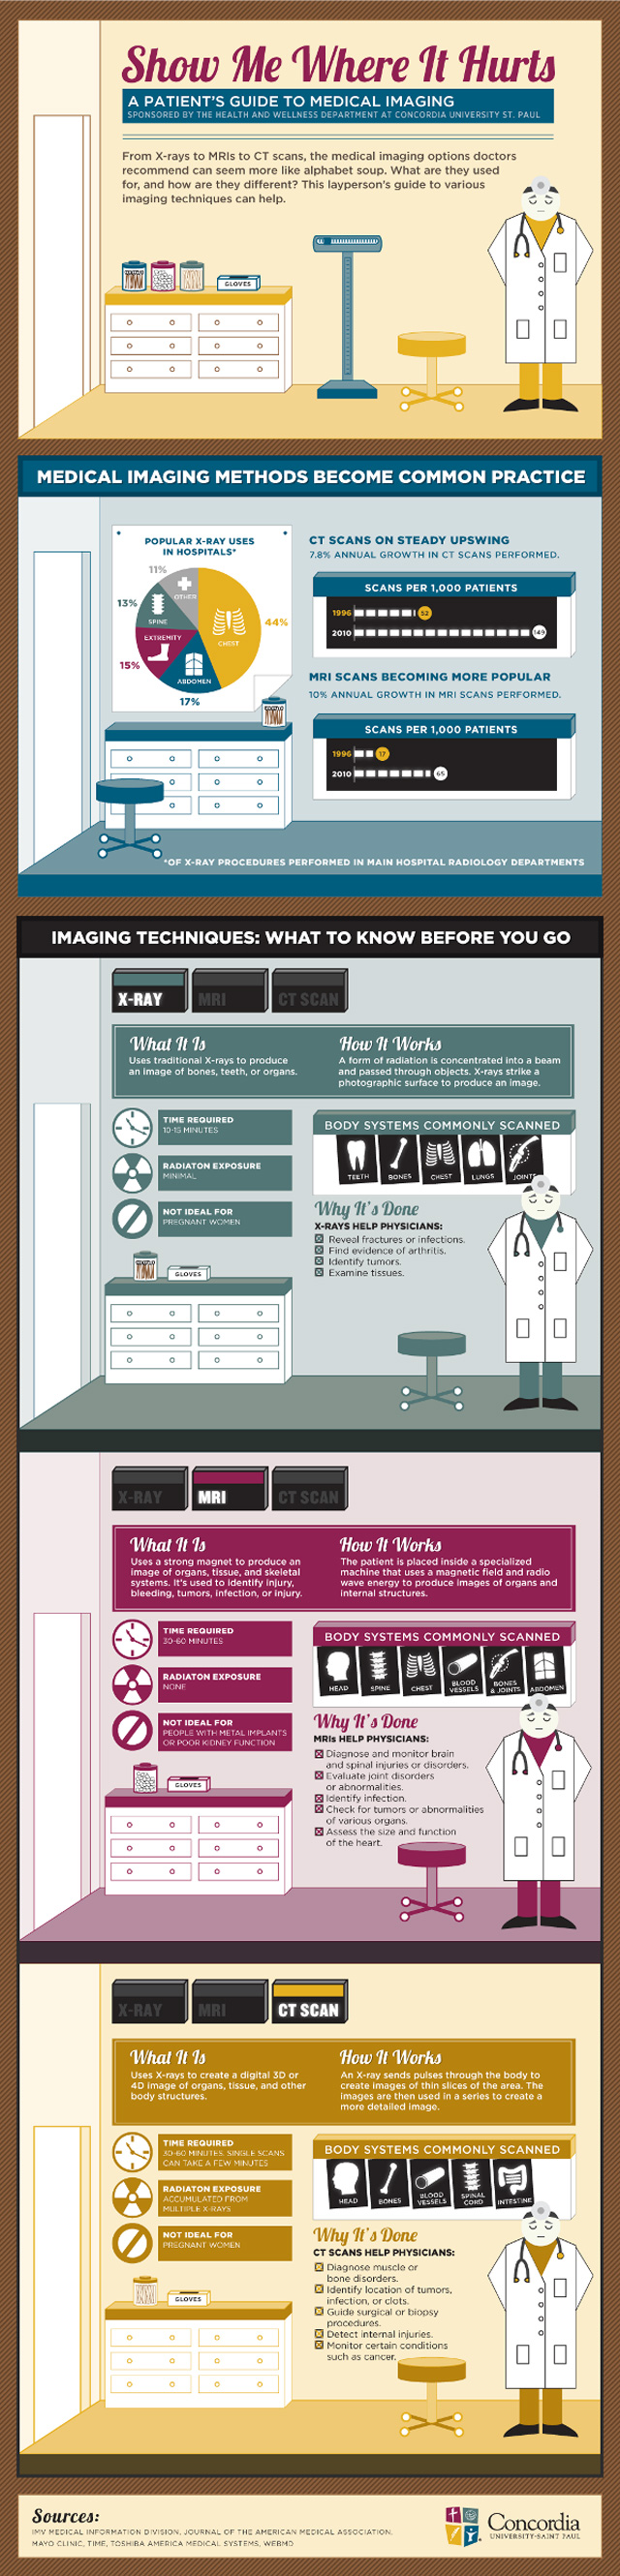 Medical Imaging Explained-Infographic